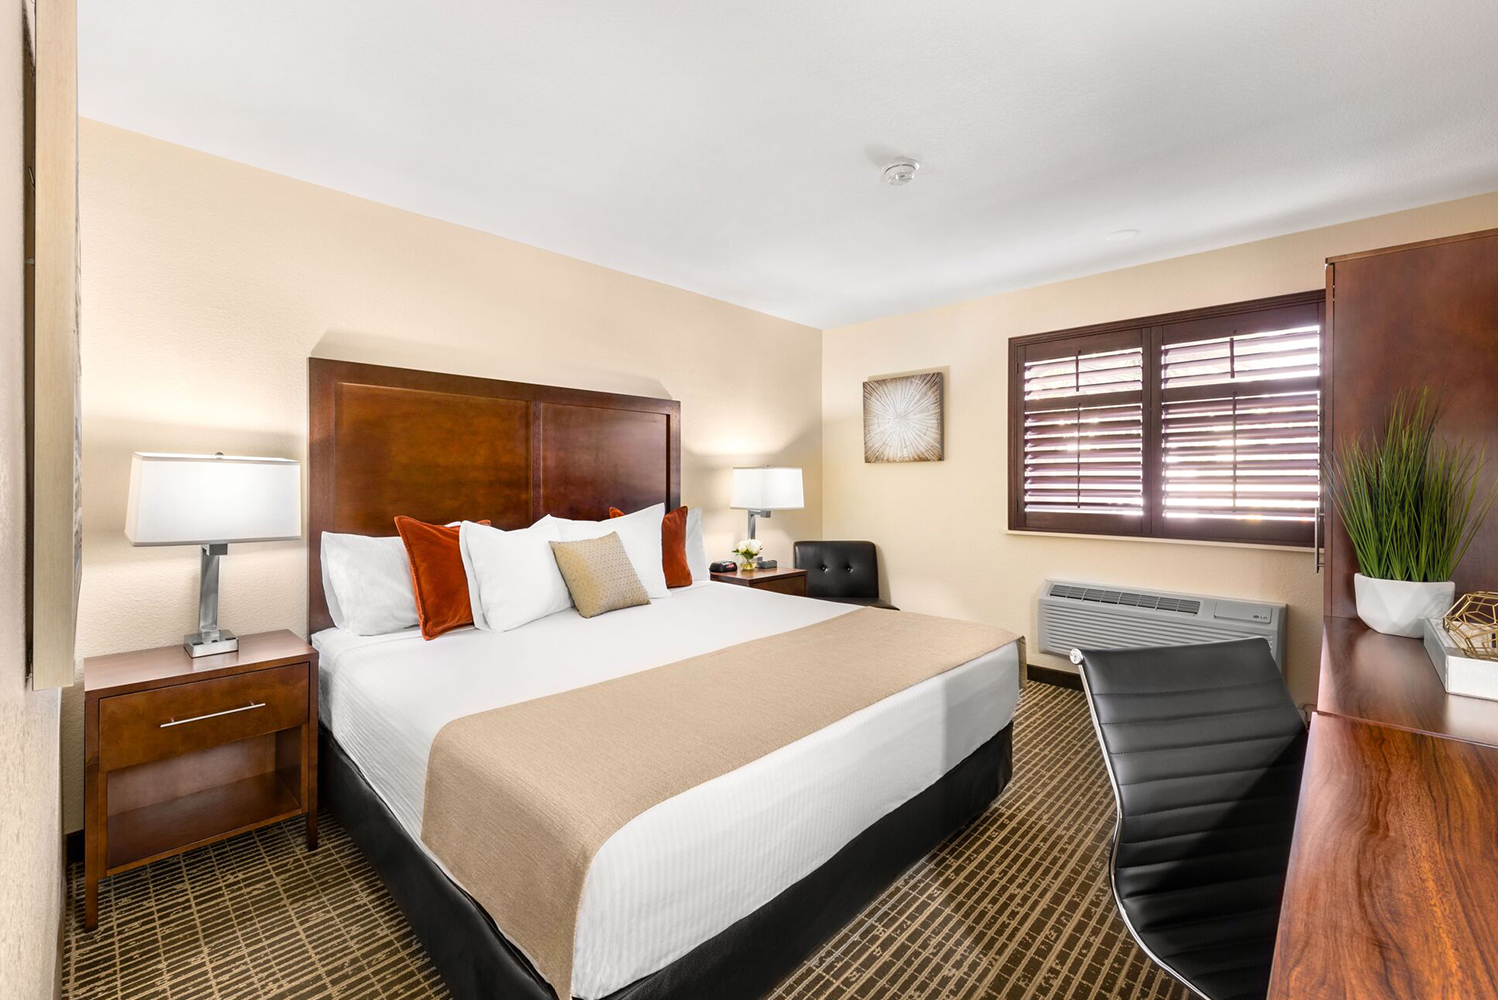 Ellis Island Hotel, Casino & Brewery completed a renovation that included the property's 289 guestrooms and 12 suites.